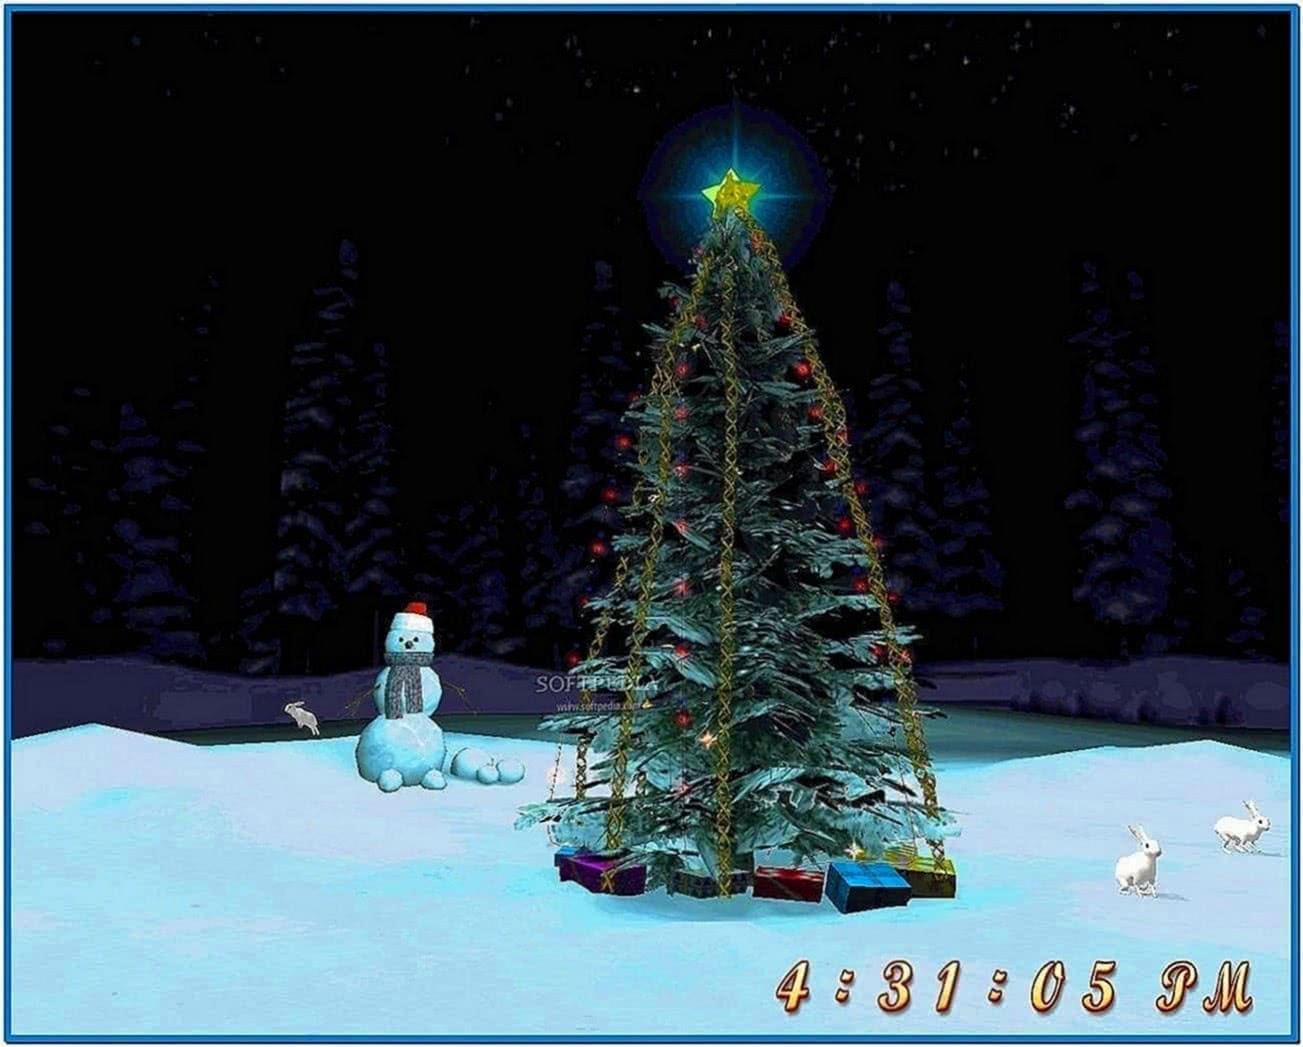 Christmas Tree 3D Screensaver Full